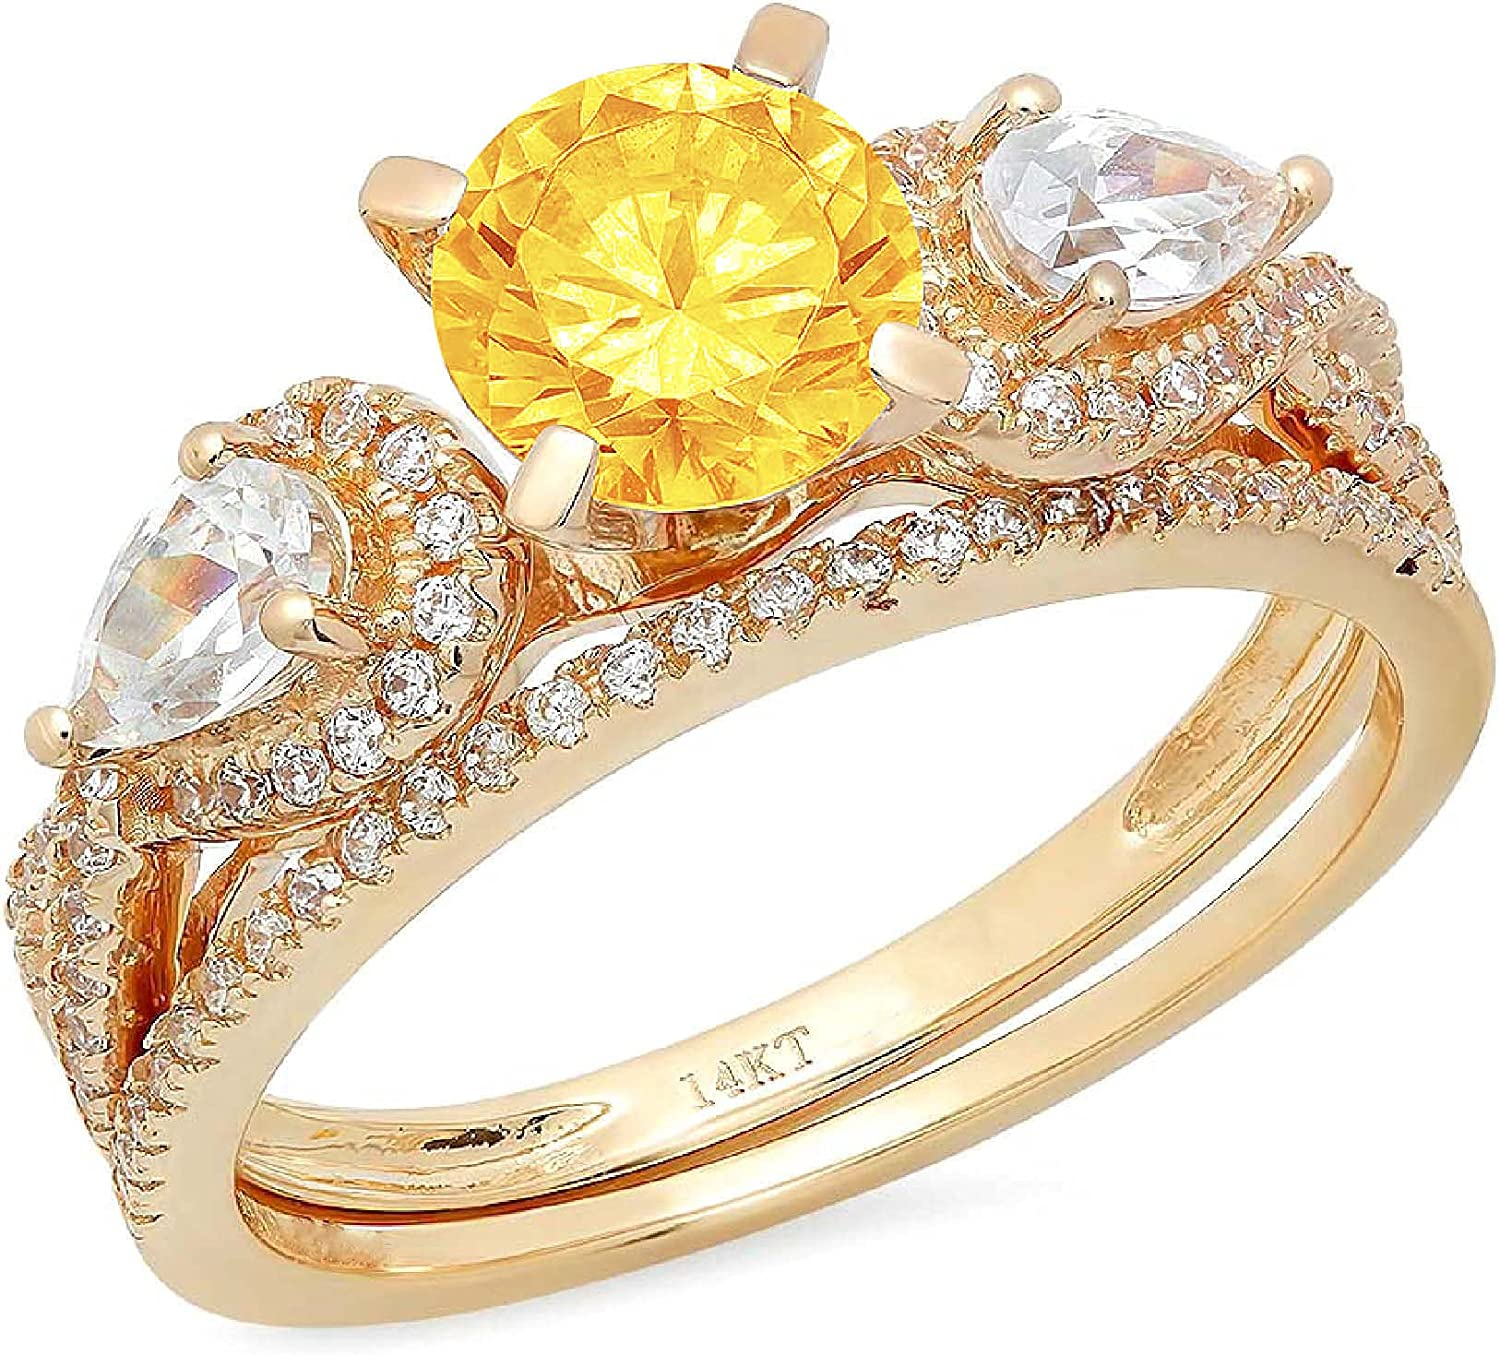 Clara Pucci 2.0ct Round Pear Cut Solitaire 3 stone Accent Genuine Flawless Natural Yellow Citrine Engagement Promise Statement Anniversary Bridal Wedding Ring Band set Solid 18K Yellow Gold